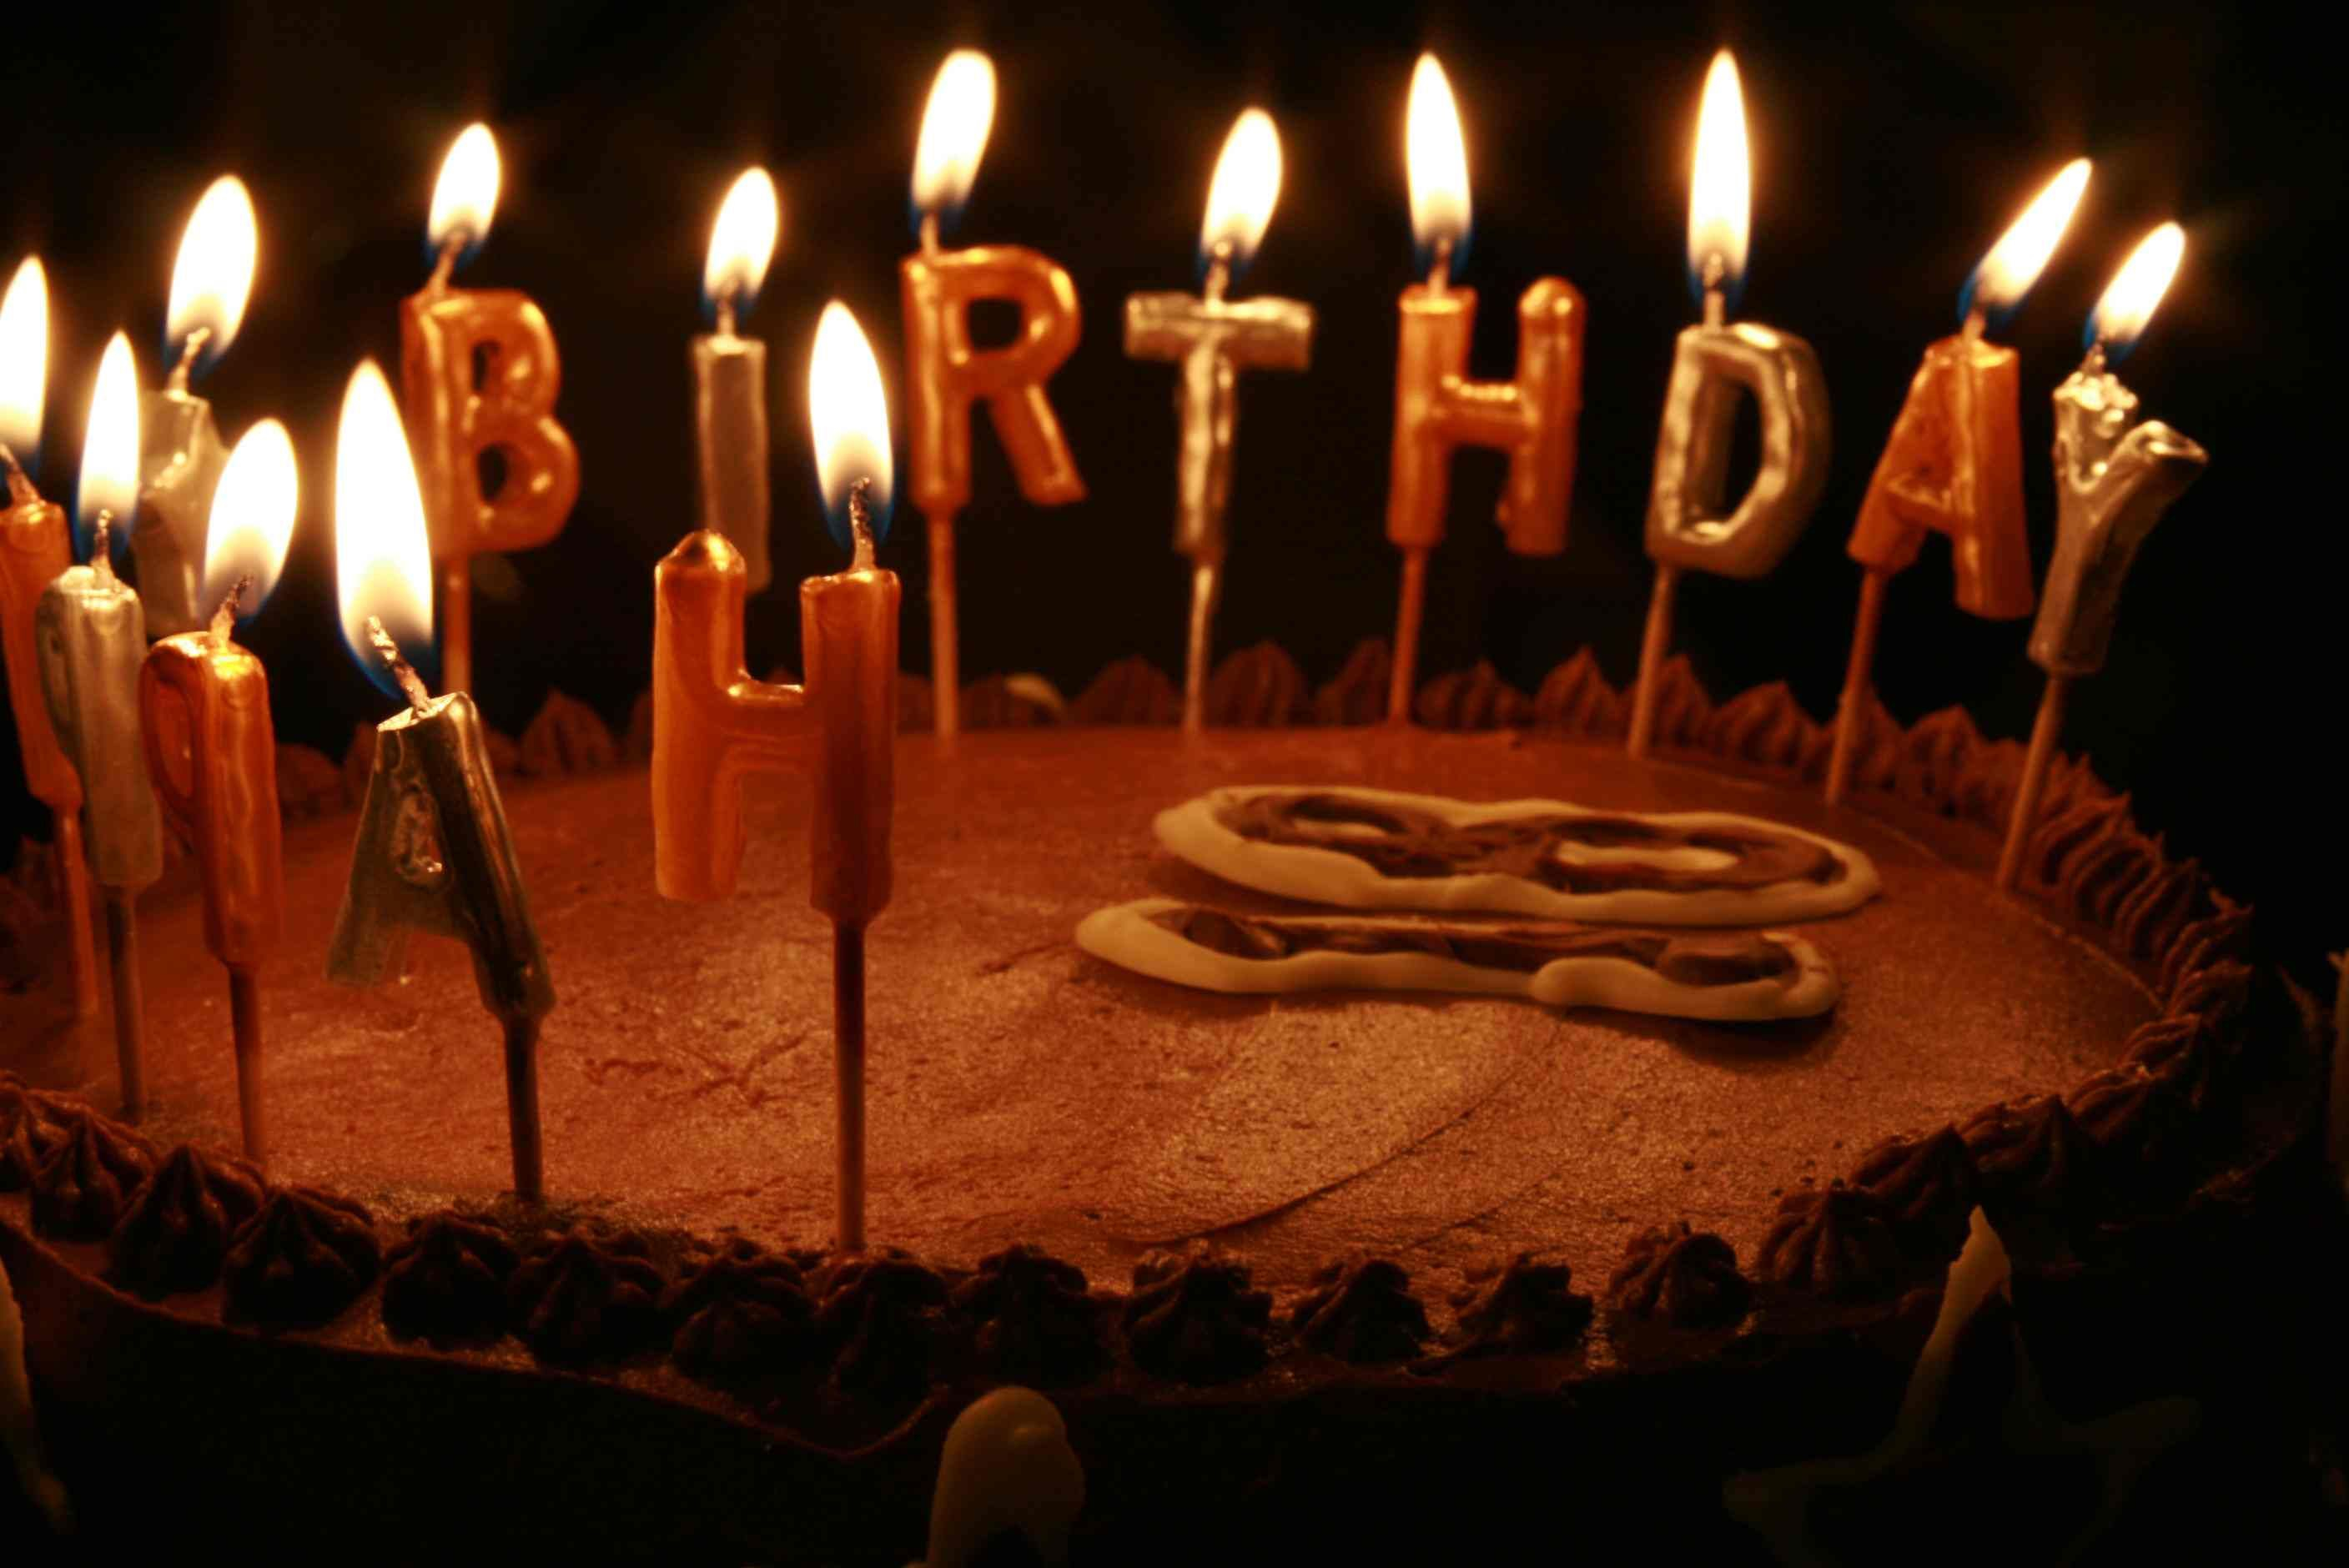 Happy Birthday Cake With Candles Happy Birthday Chocolate Cakes With Candles Hd Wallpaper Full